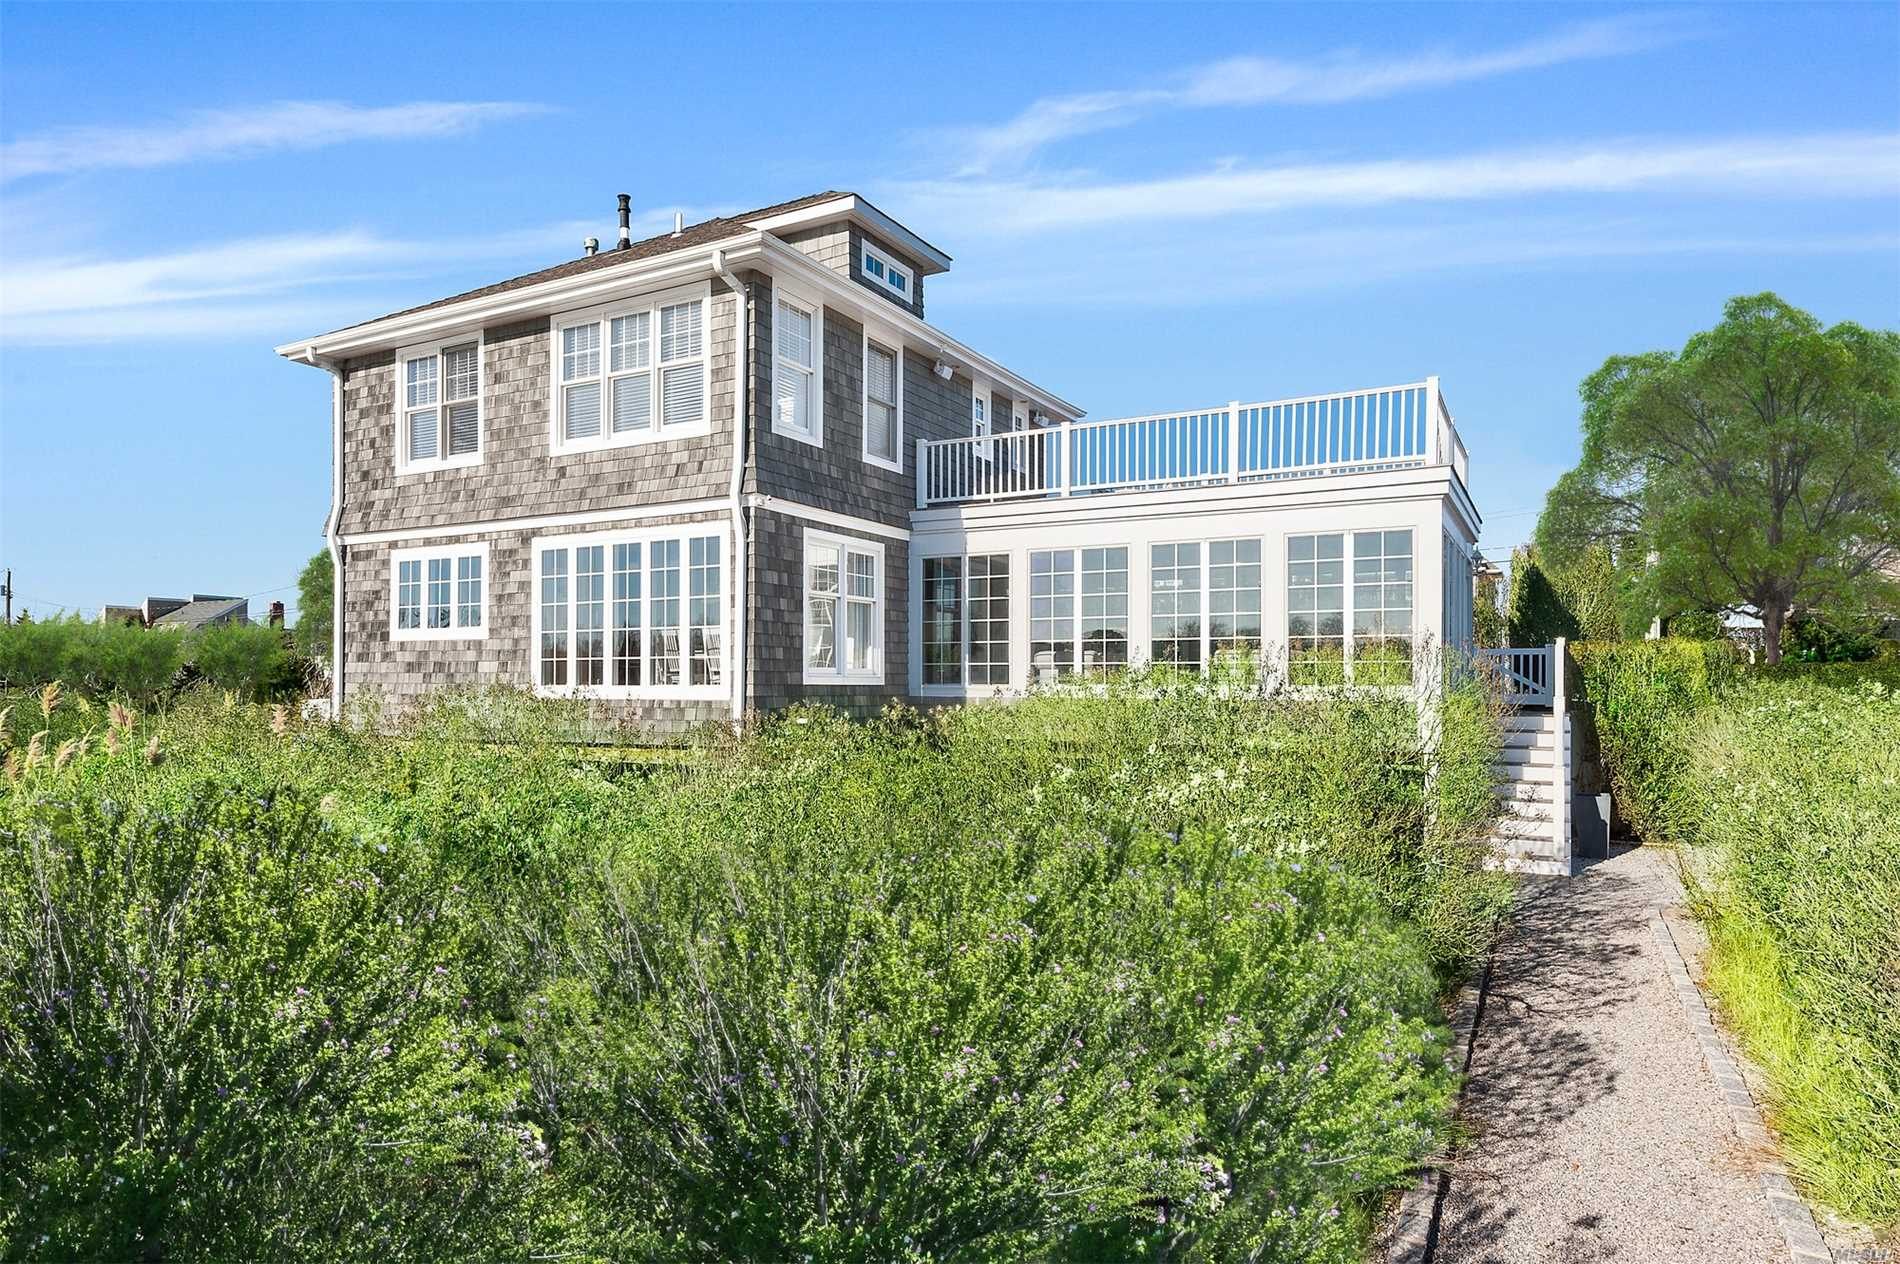 Custom Built Beach House In Cold Spring Point Beach Community.Open Plan Surrounded By French Doors Overlooking The Bay. Cozy Den With Fireplace, Plus Sun Drenched Living Room With Water Views. Second Floor Bedrooms All Meticulously Designed. Large Second Floor Deck With Views Of Bay And Harbor. Private Deep Water Dock, Sandy Bay Beach And Community Tennis. Close To Southampton Village Shops, Restaurants And Ocean Beaches.